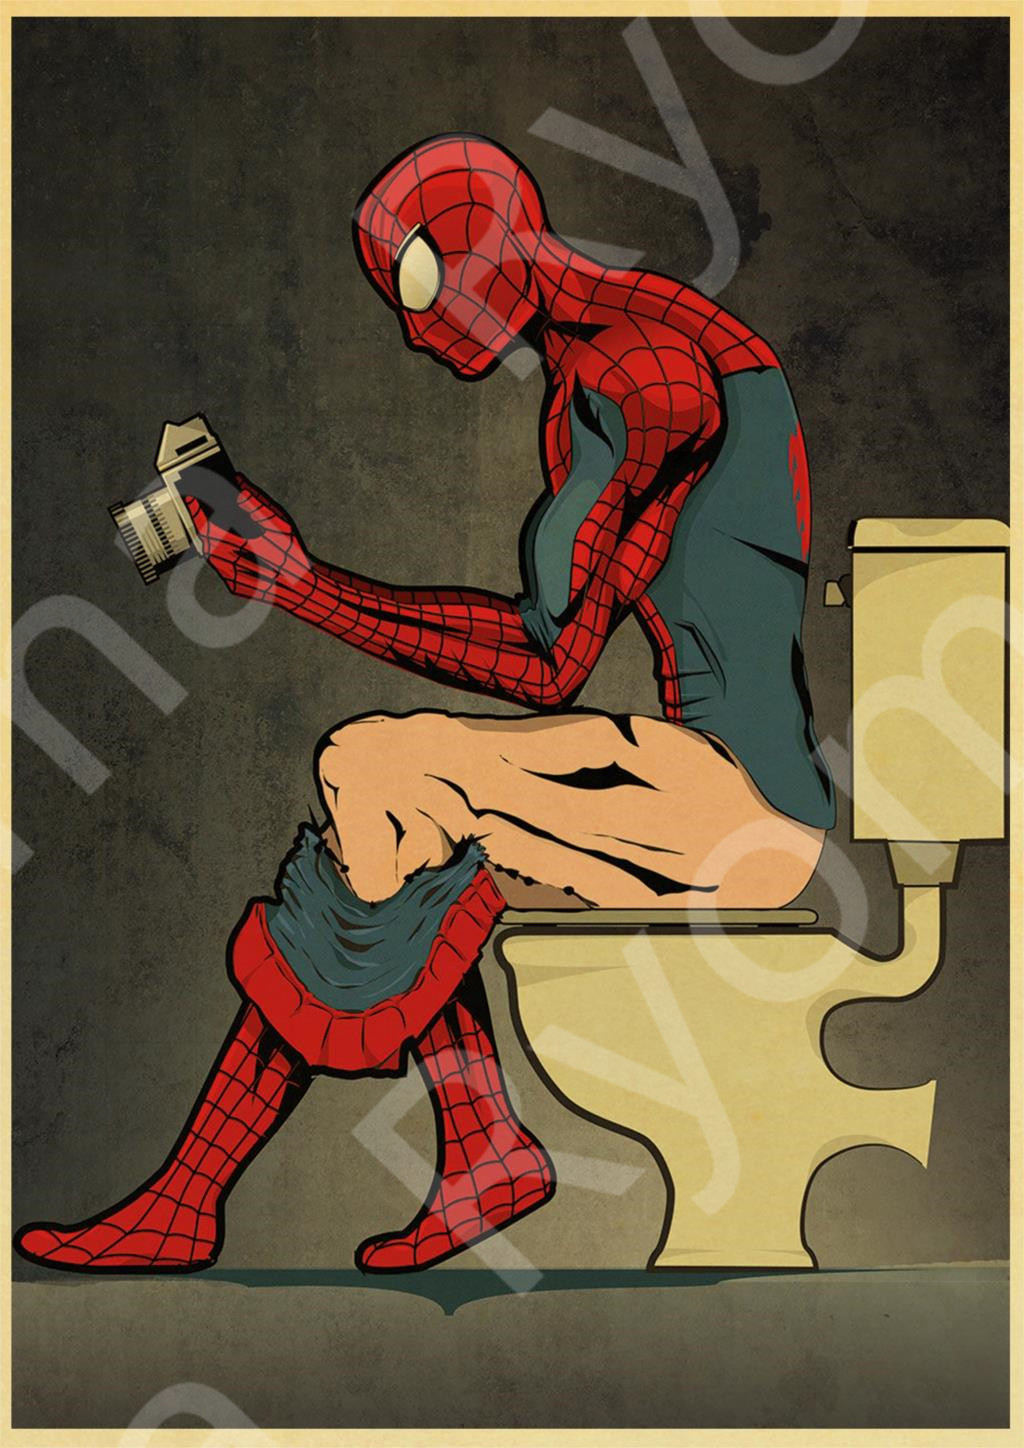 Funny Super Heroes Poster Spiderman Toilet Decorative Posters And Prints Wall Pictures For WC Decor Wall Stickers Living room image